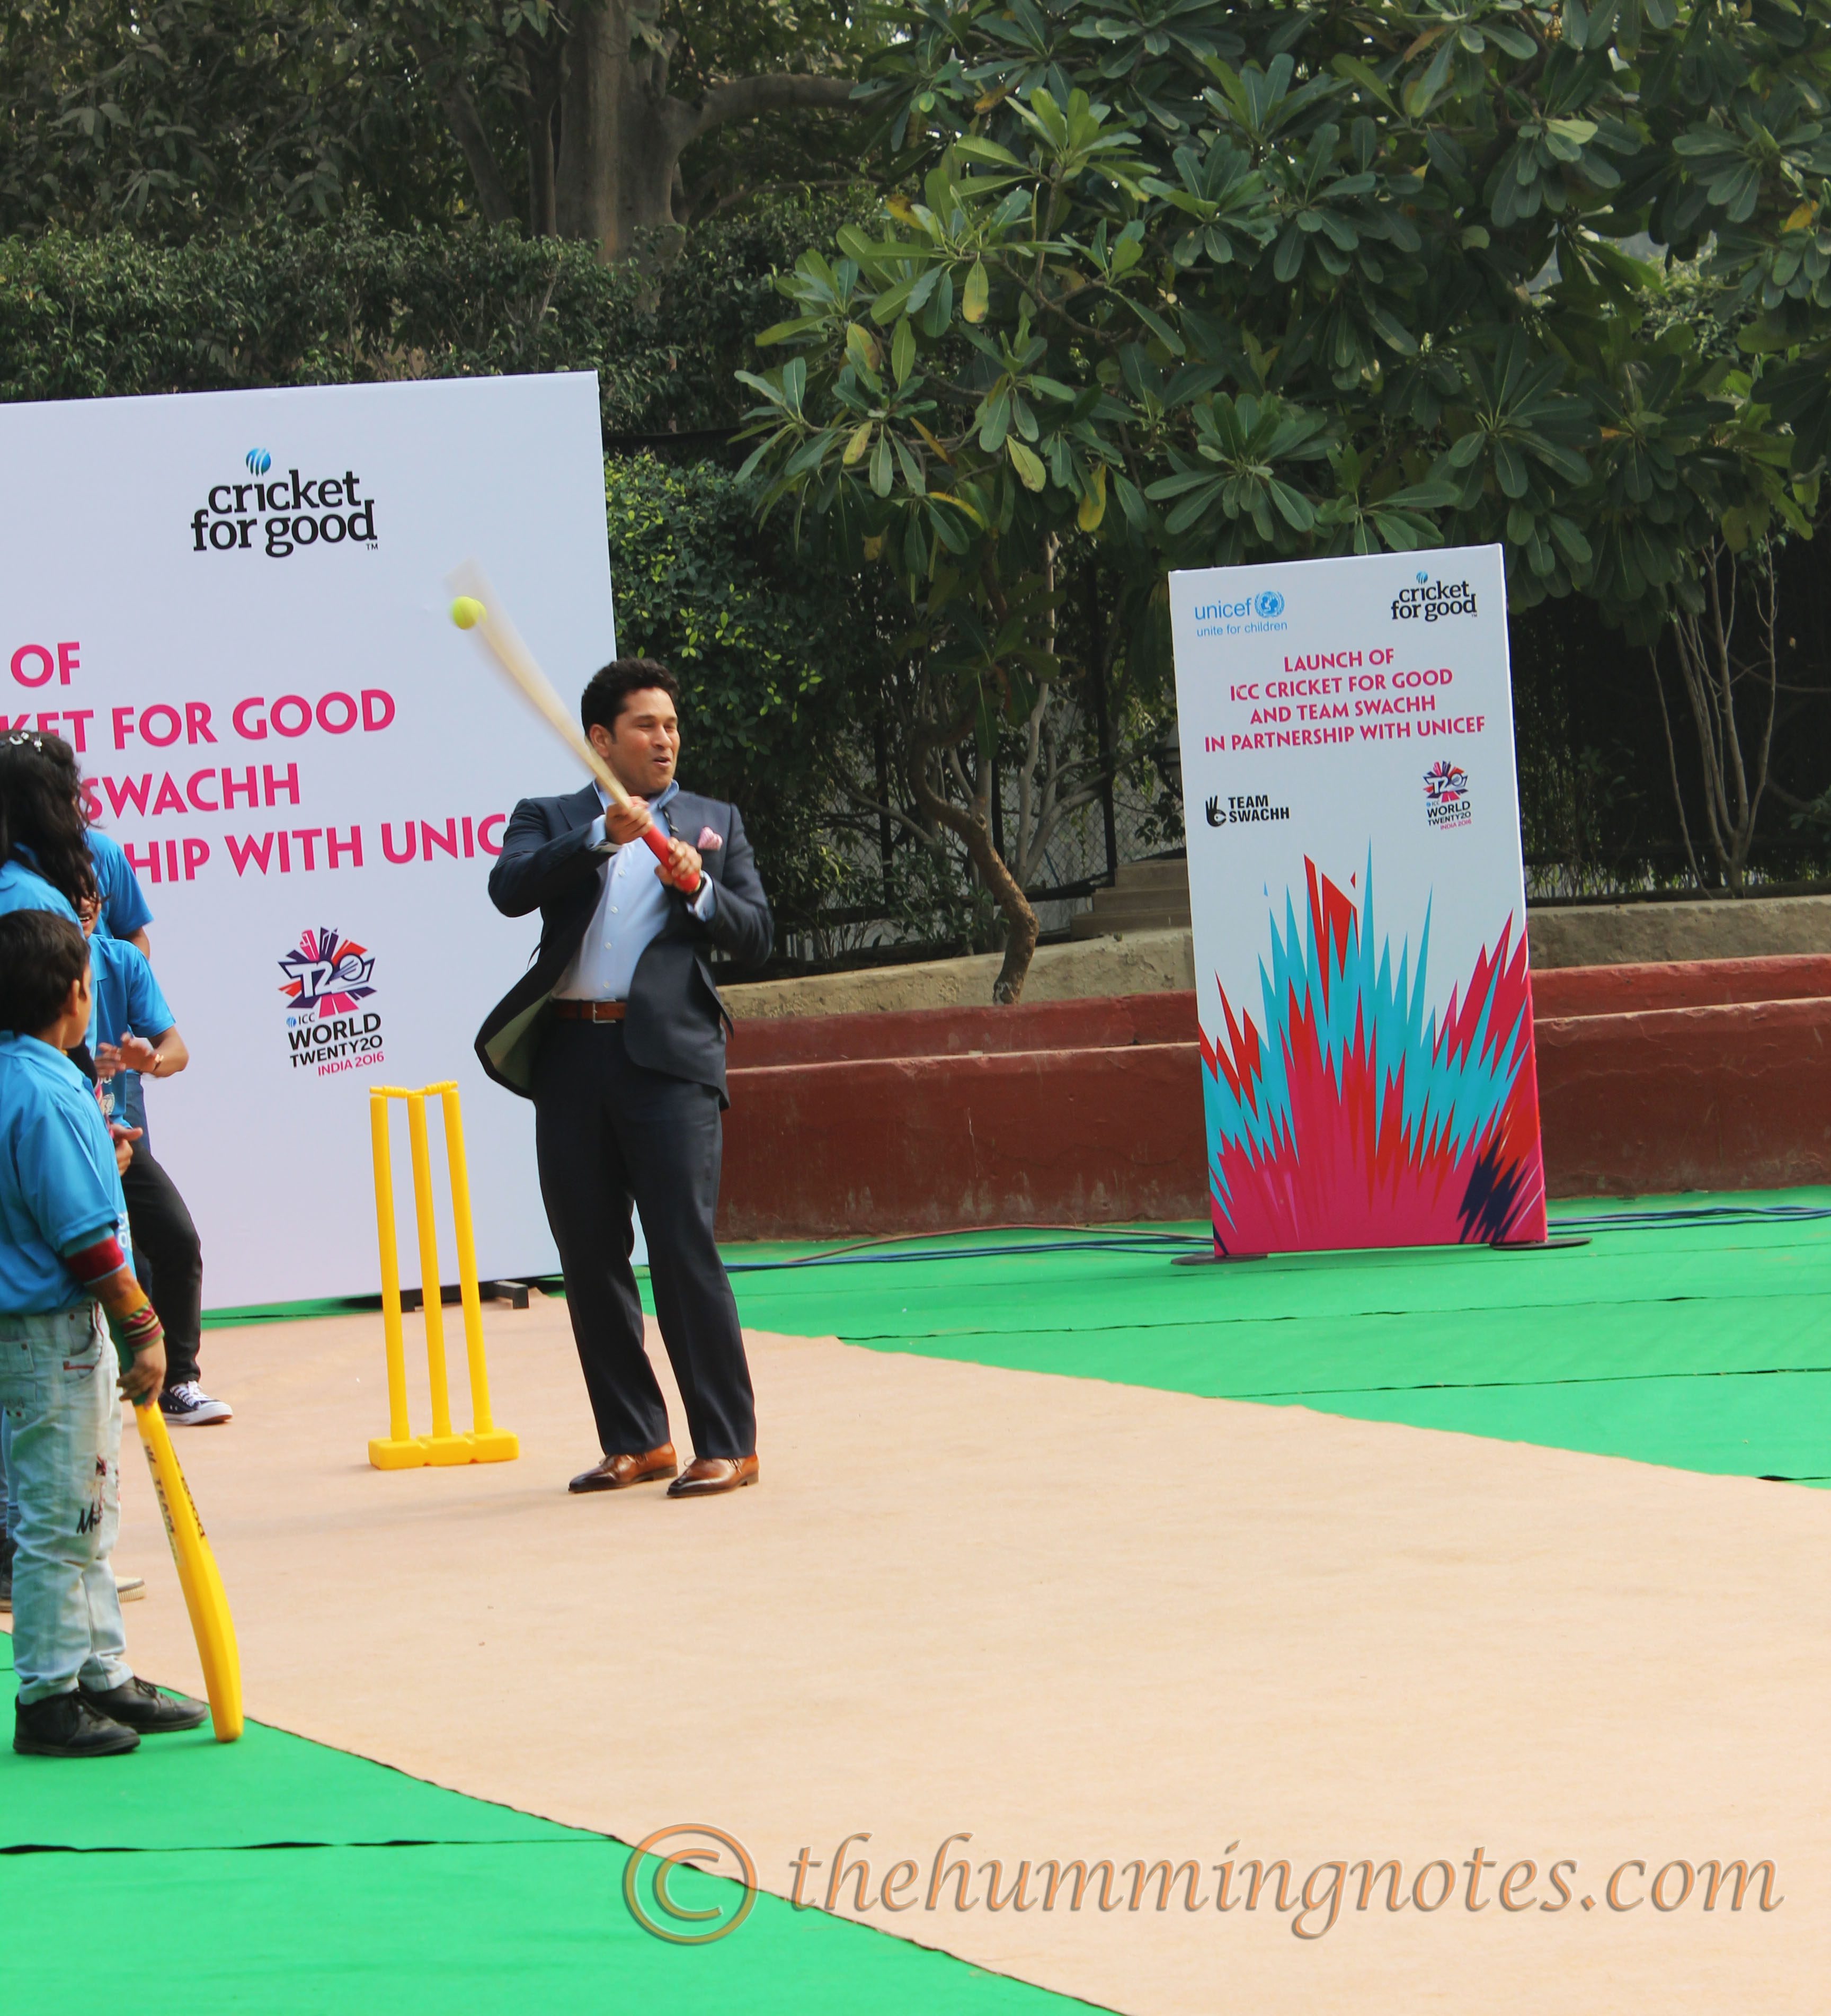 ICC Cricket for Good_Sachin bats